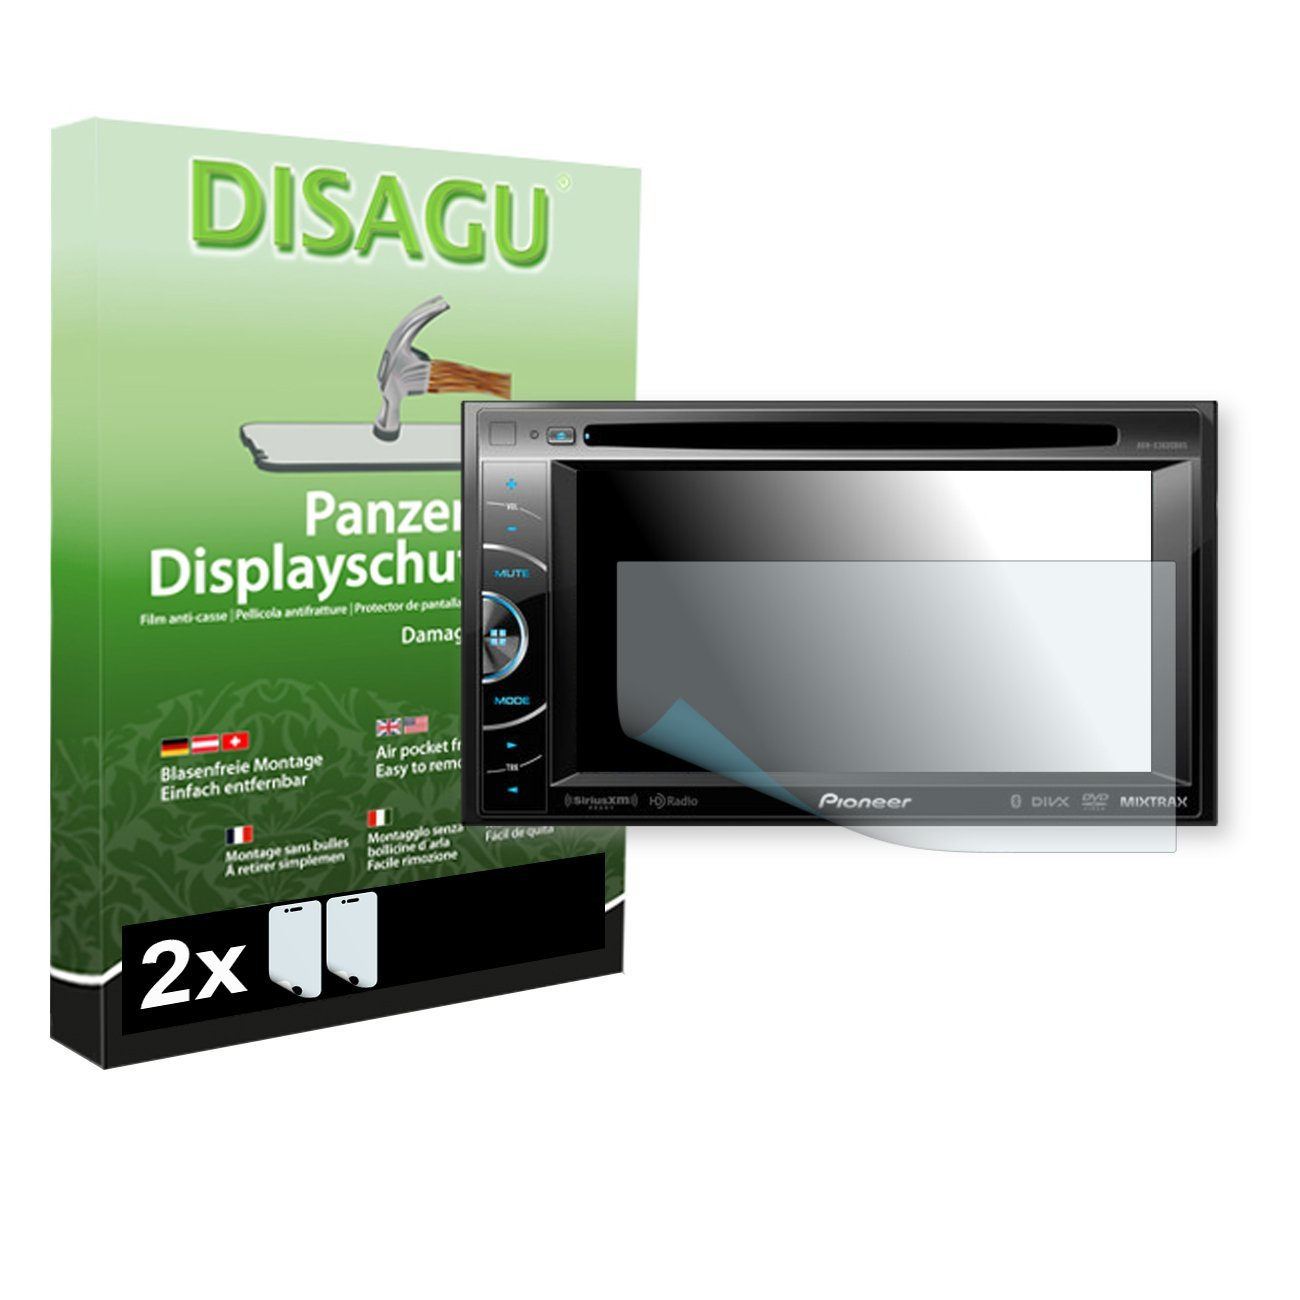 2 x DISAGU Armor screen protector for Pioneer AVH-X3600BHS screen fracture protection film